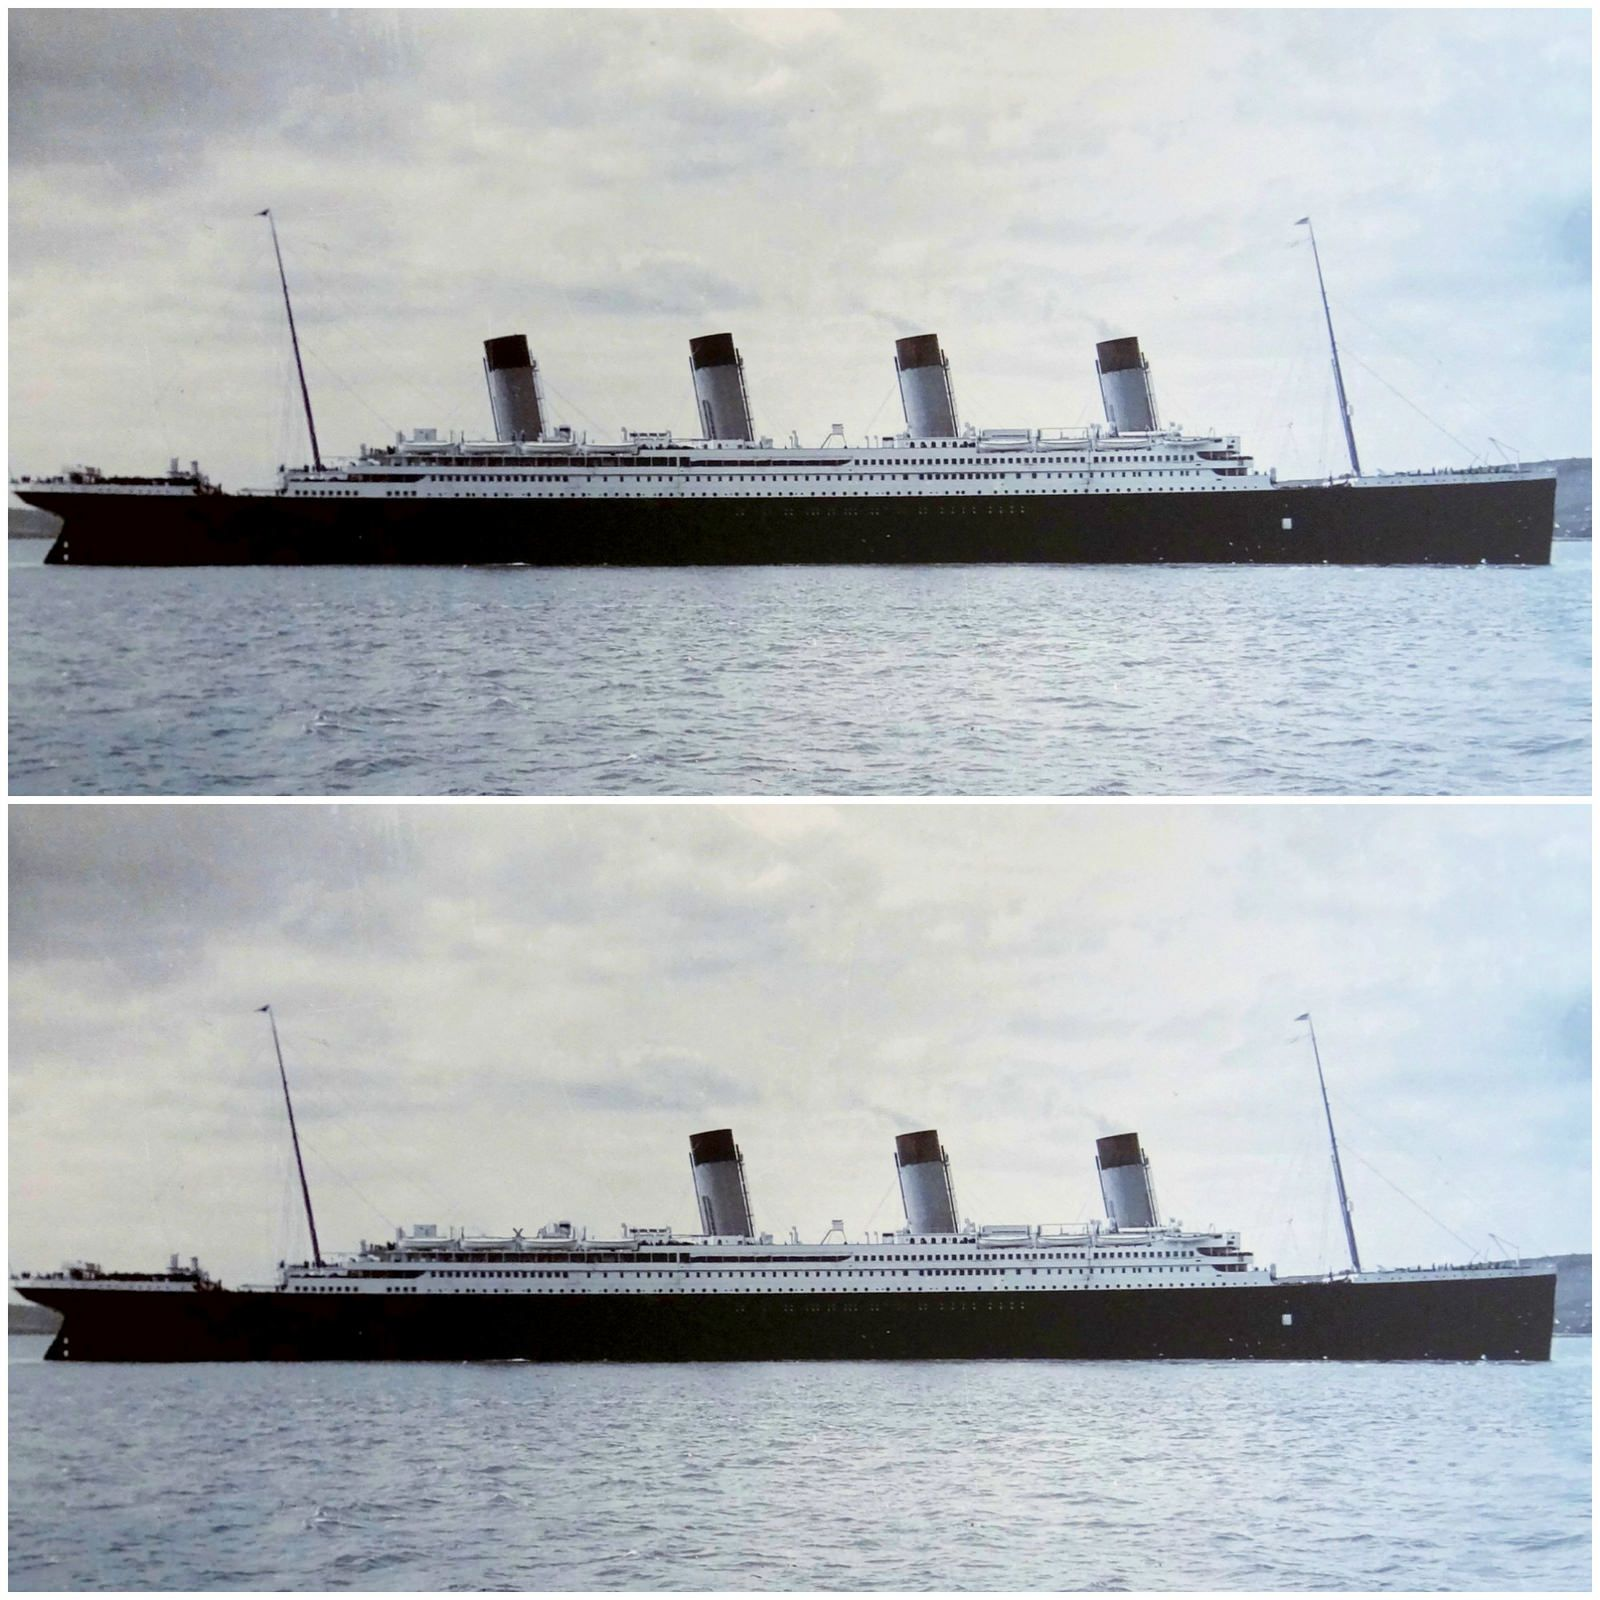 10 Fascinating Facts About Titanic With Images